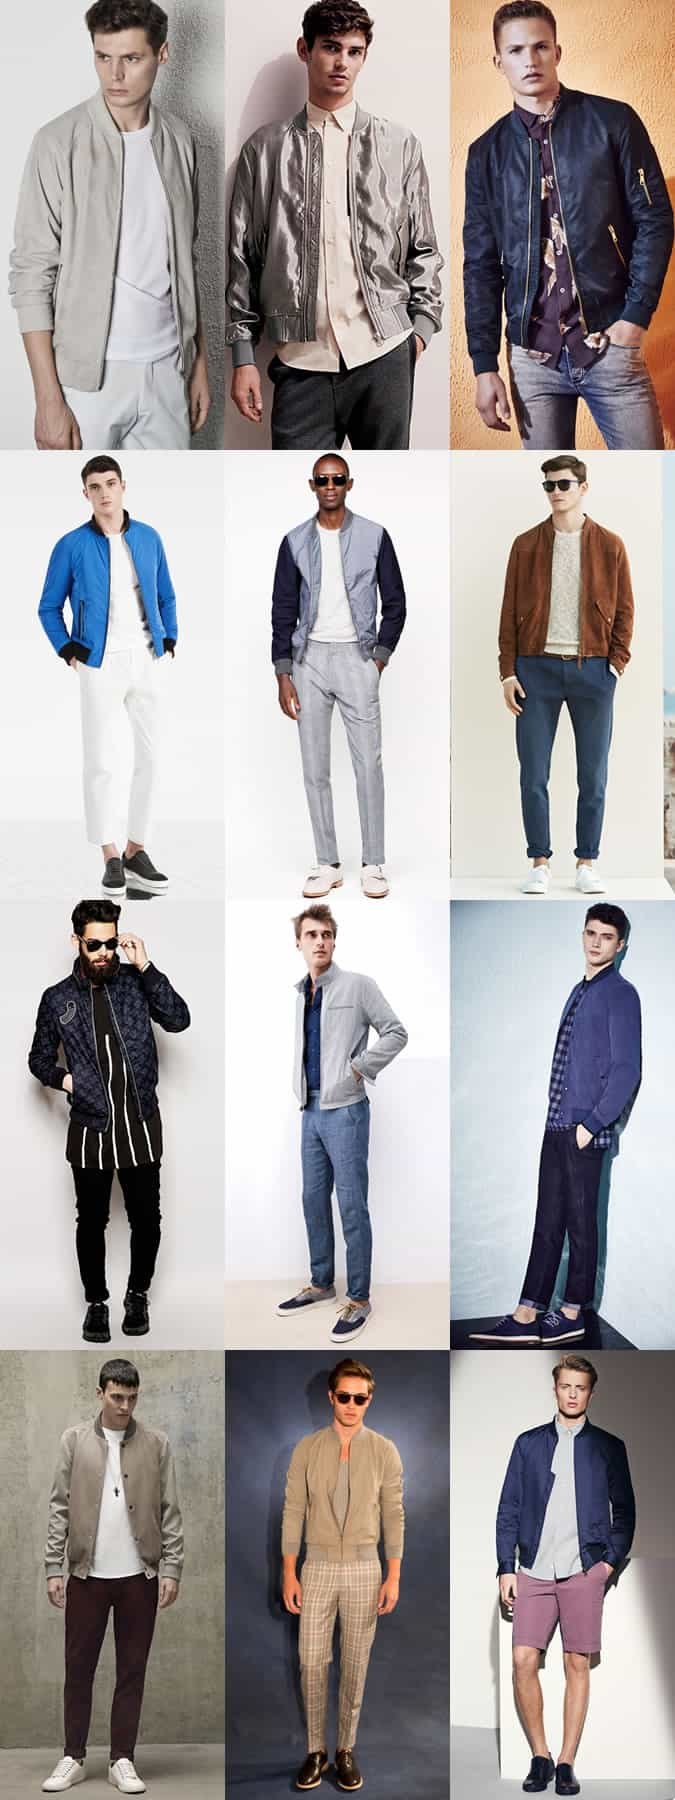 Men's Textured Bomber Jackets - Spring/Summer Outfit Inspiration Lookbook